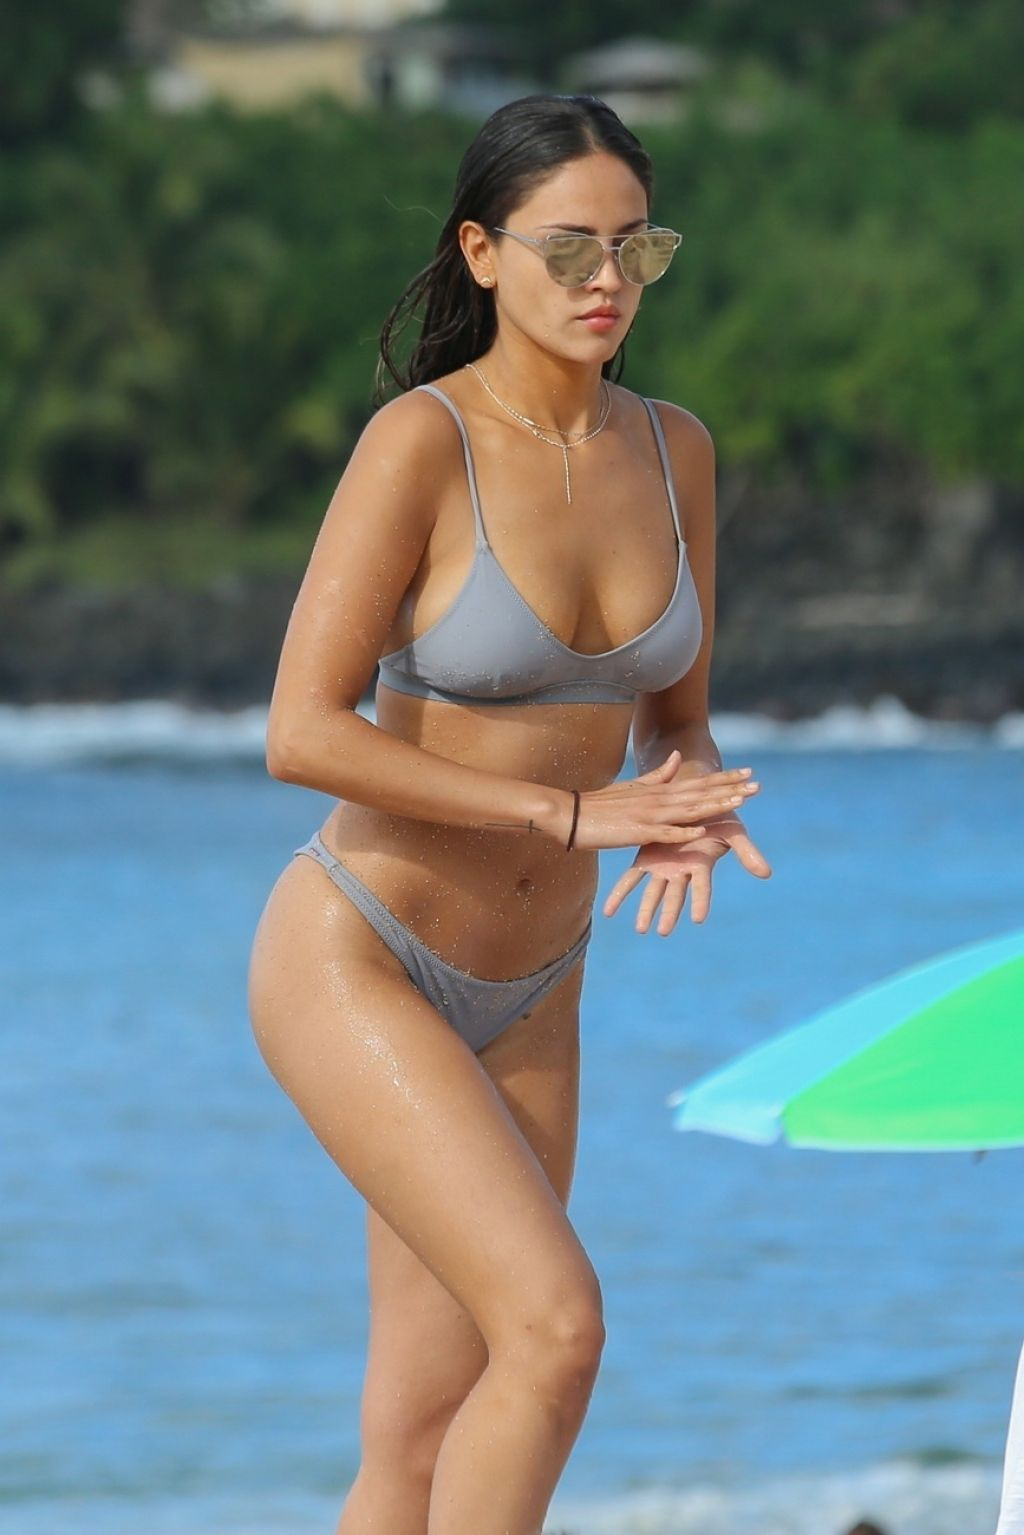 Eiza Gonzalez Hot in Bikini 11182018